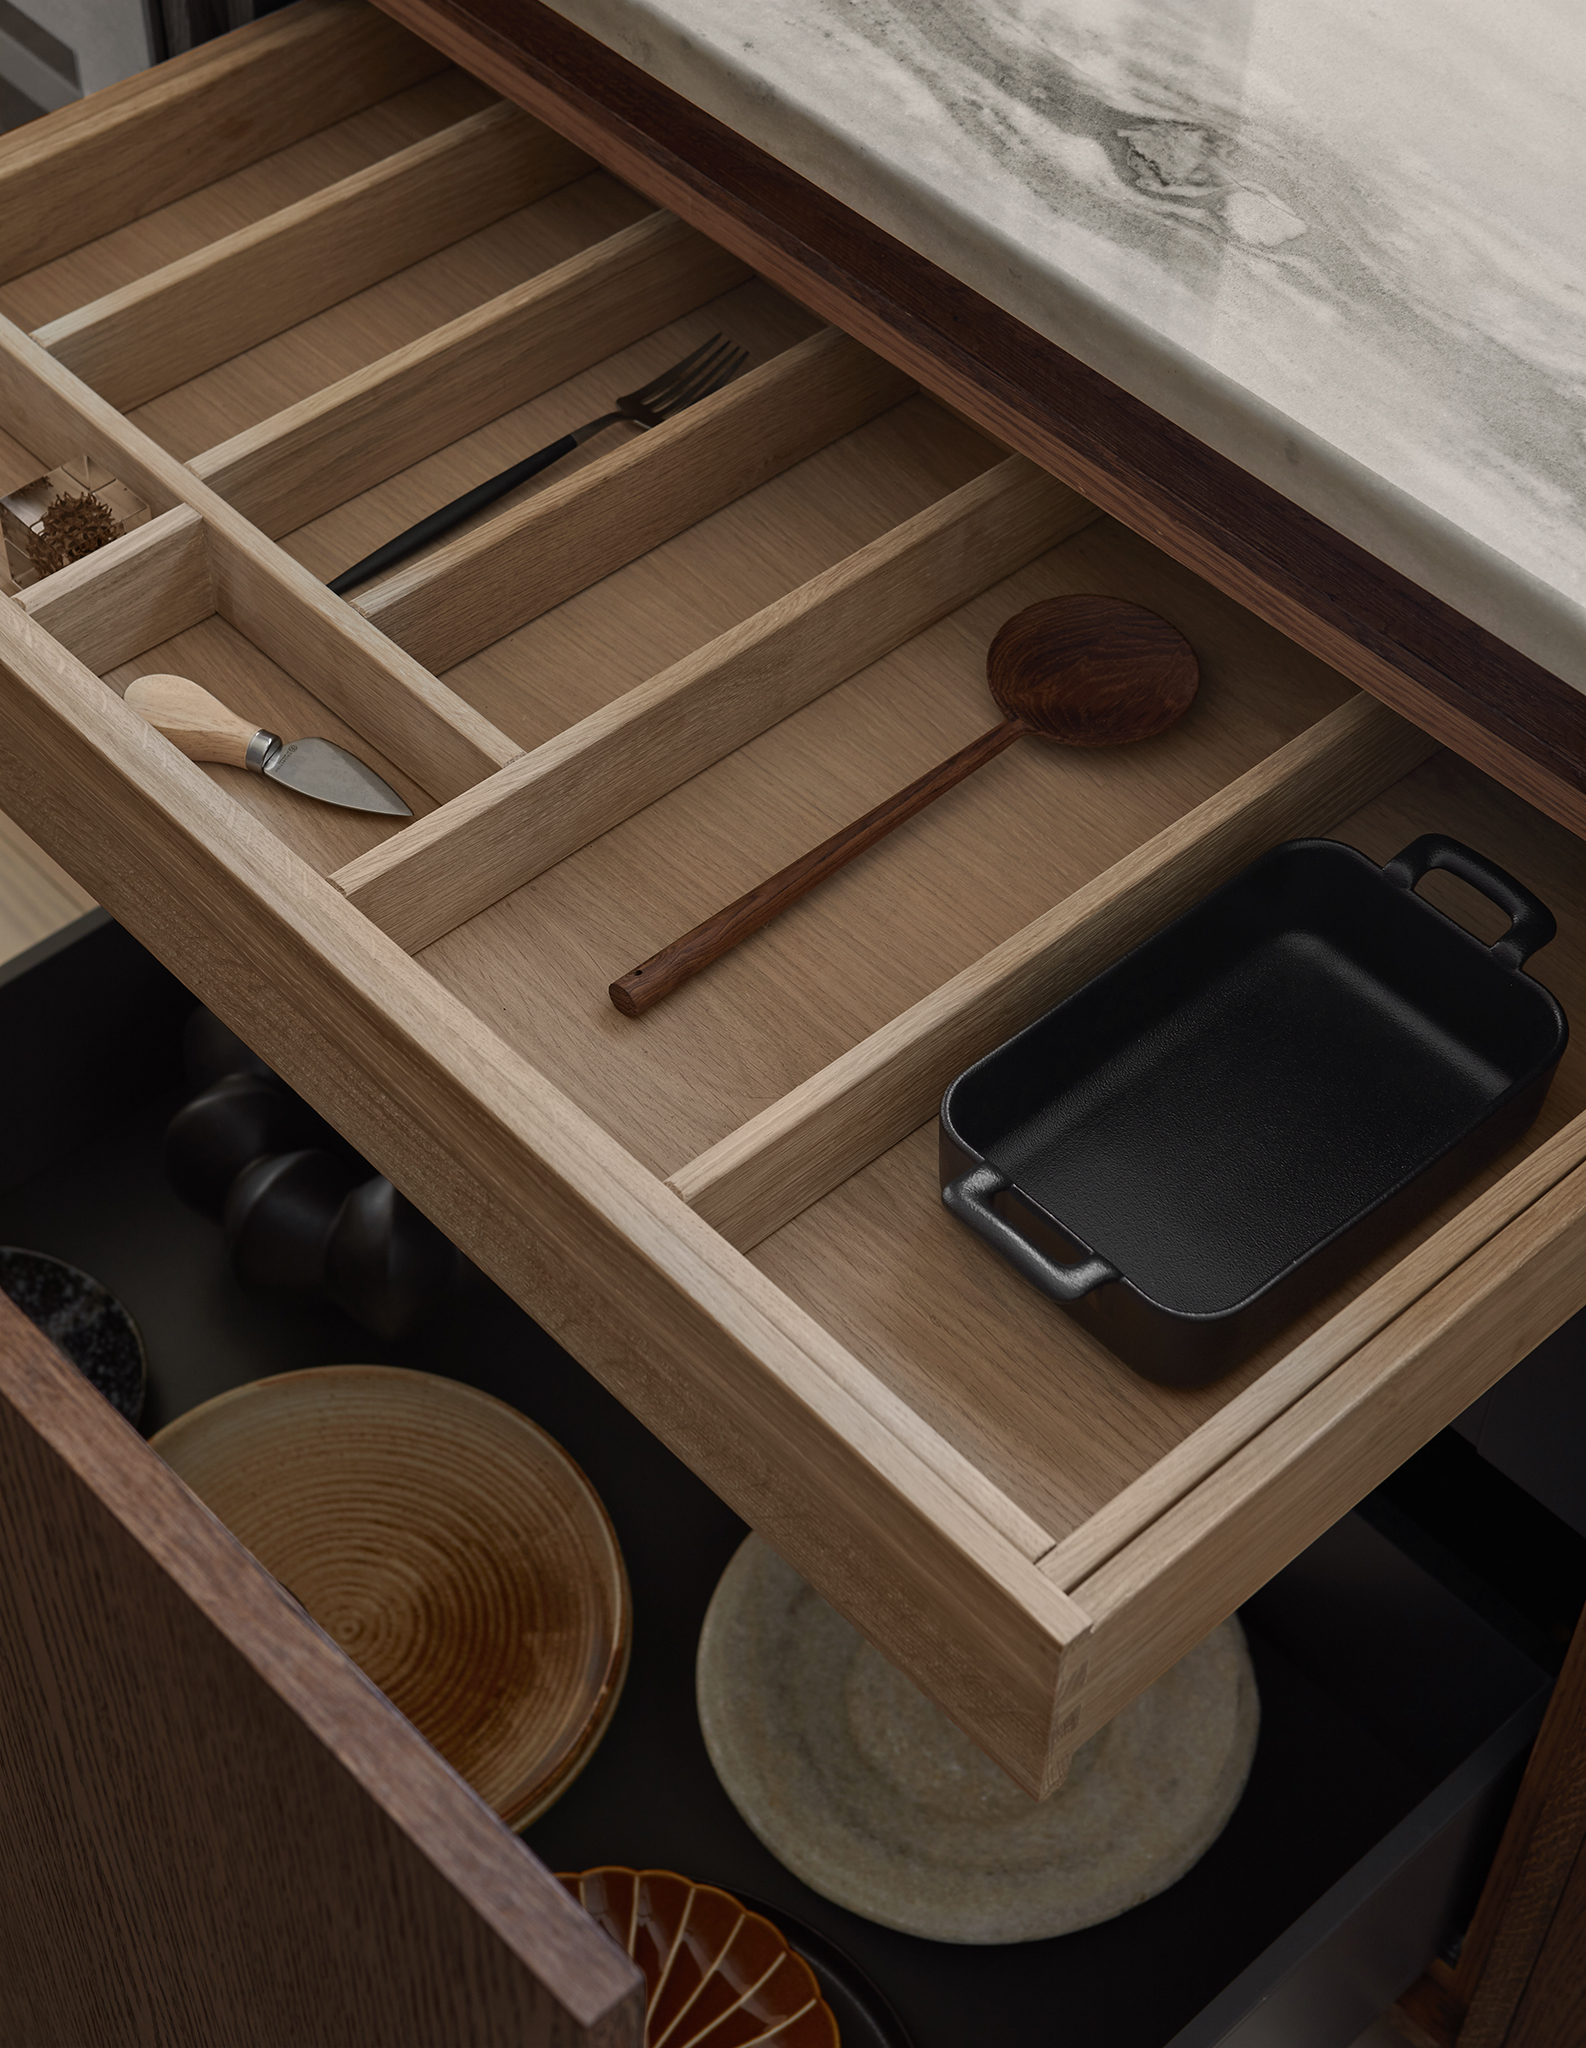 wooden kitchen drawers with marble countertop